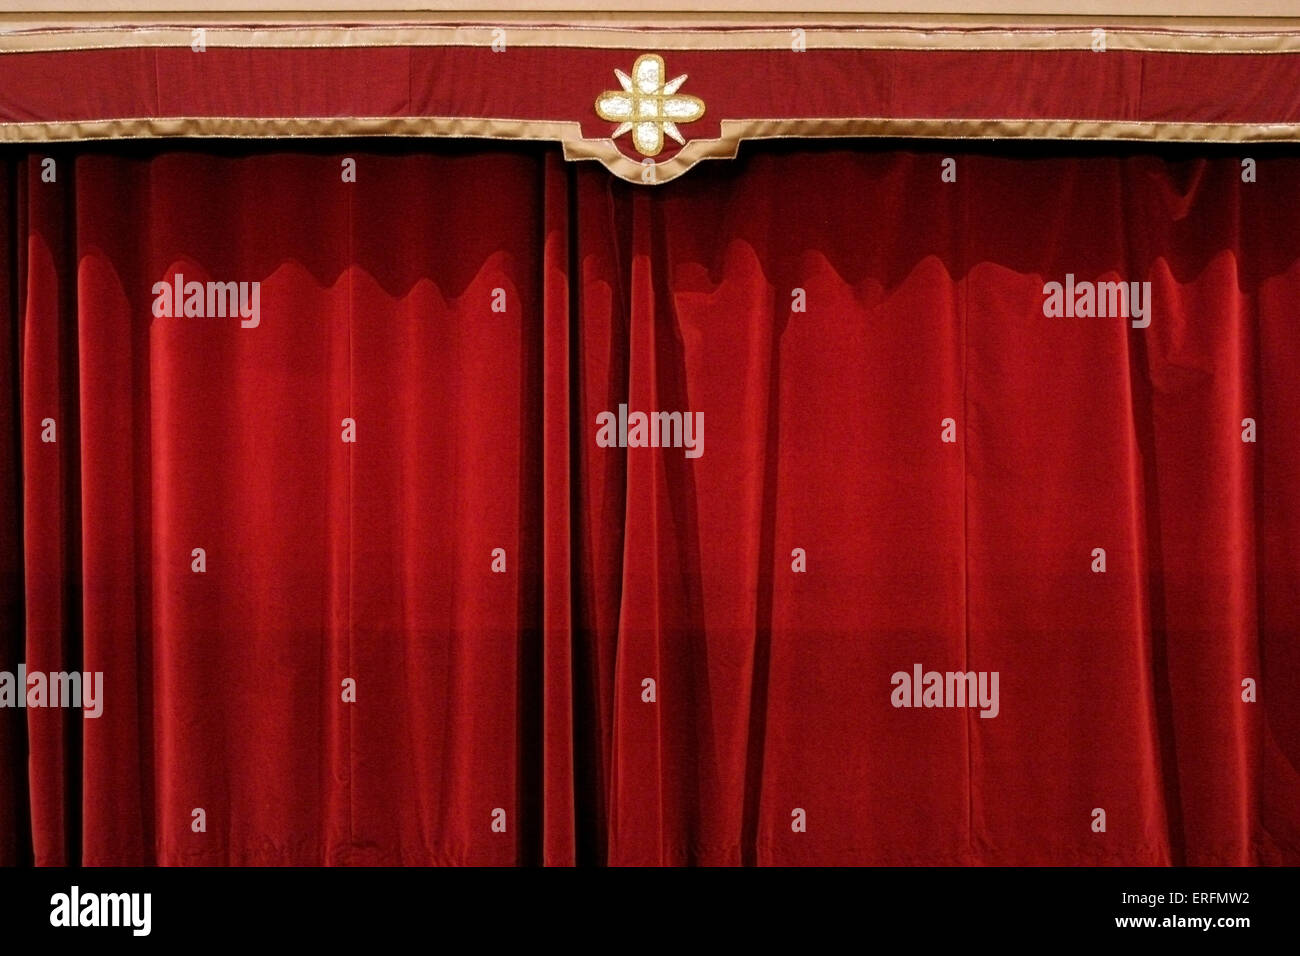 available clipart new shutterstock art users white isolated full stage stock free color drapes photos clip window photo size royalty curtains png and border on low gold or rates amazingly of a red see black golden